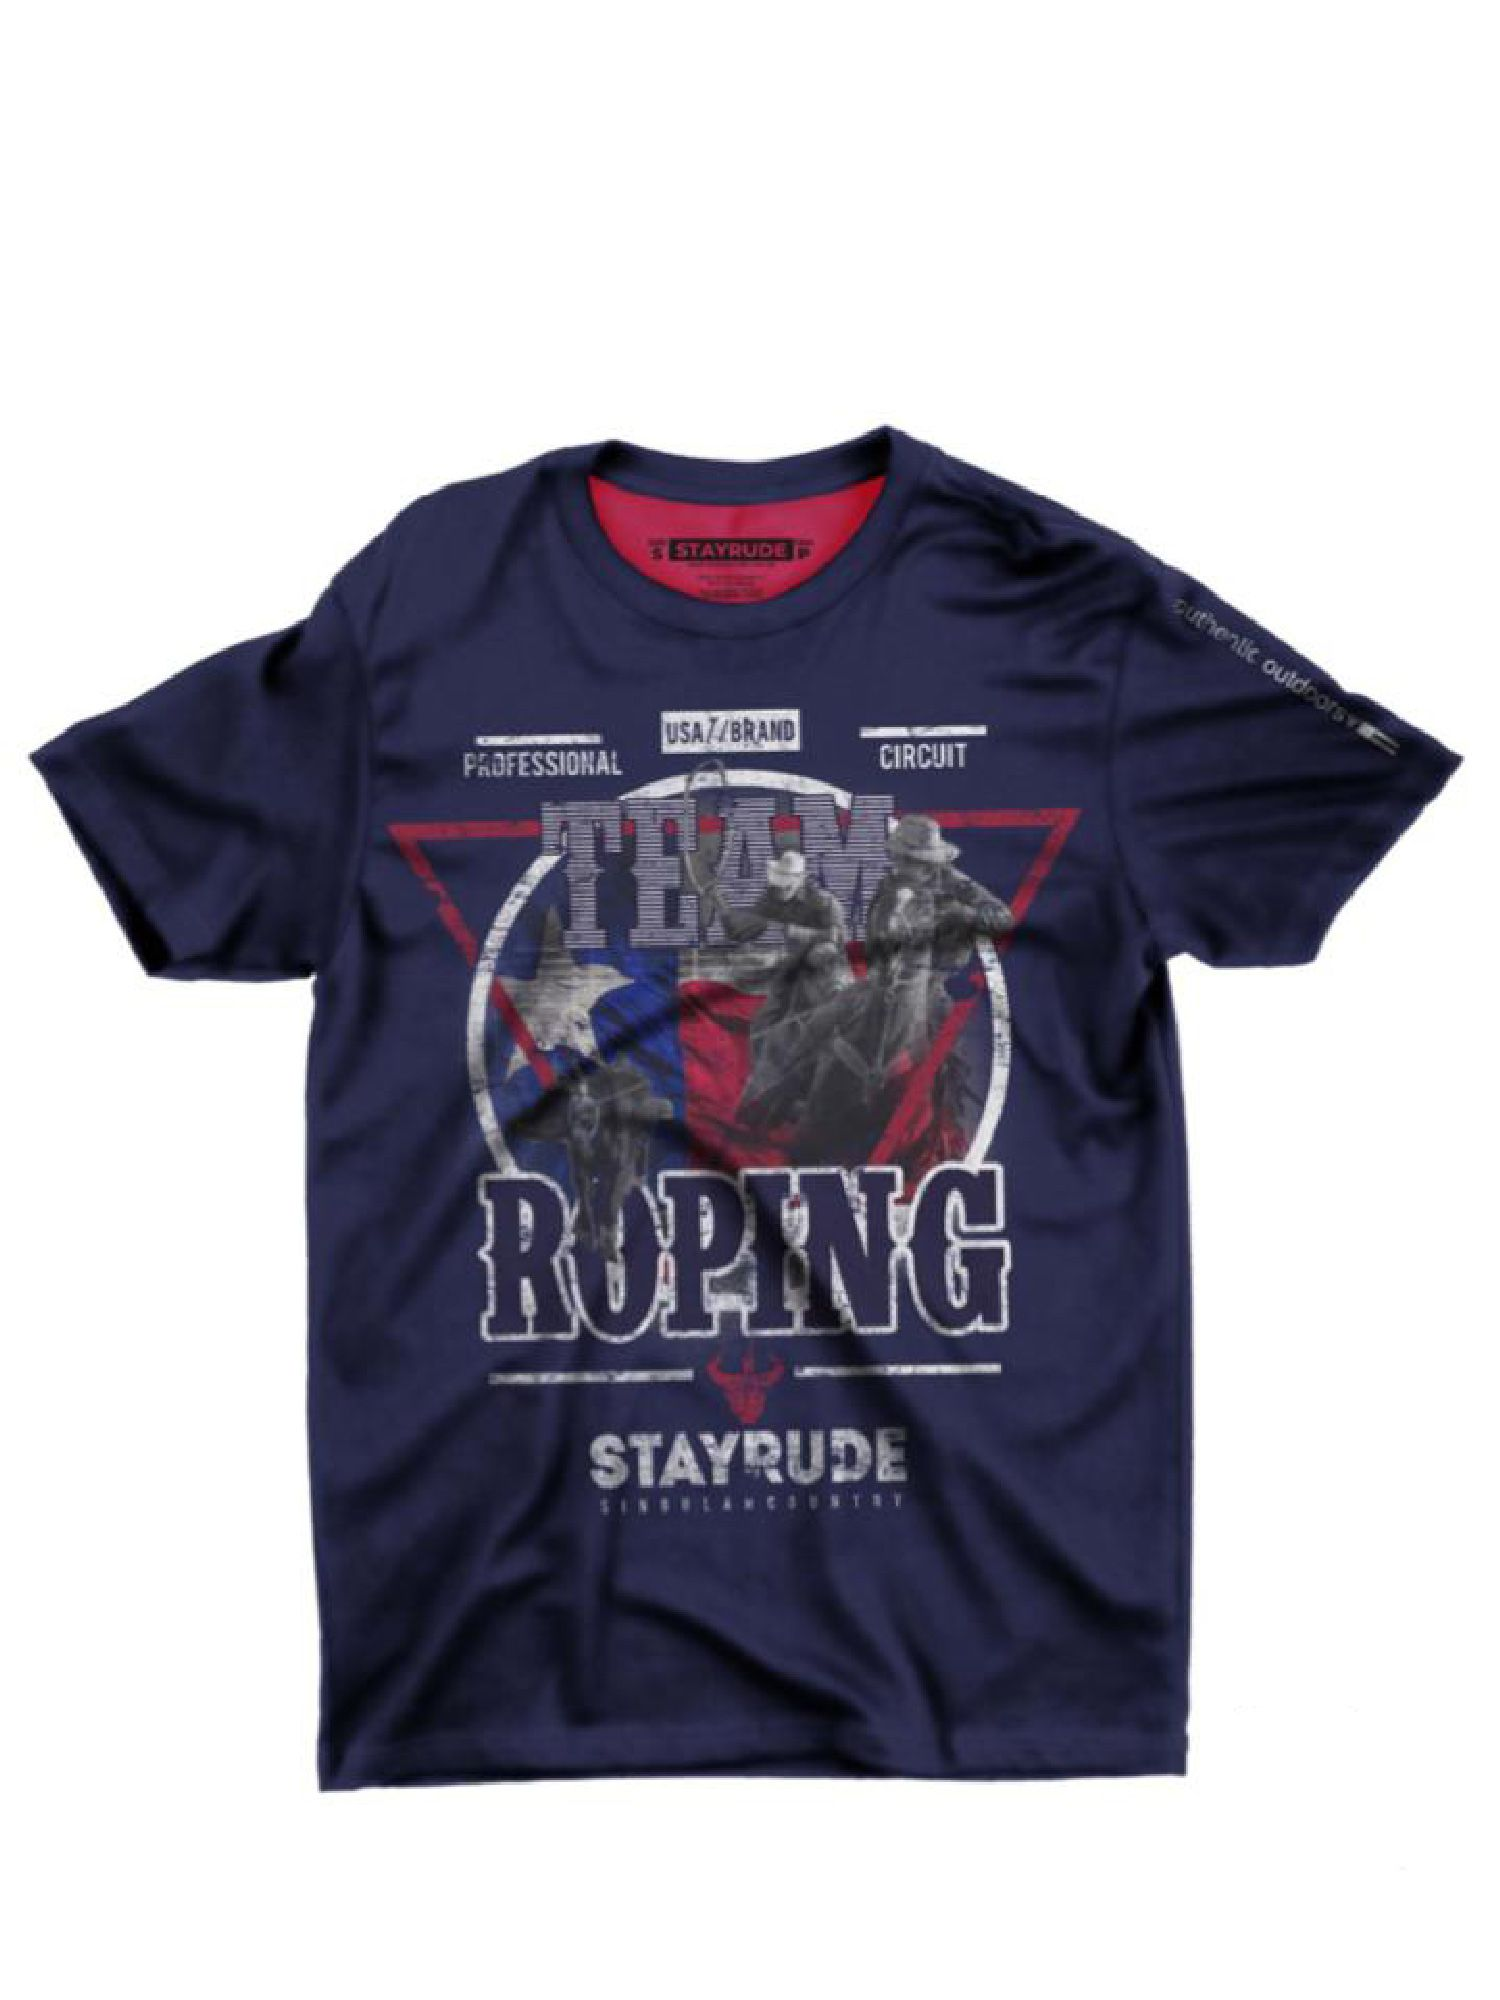 Camiseta Masculina Stay Rude Team Roping Azul Marinho